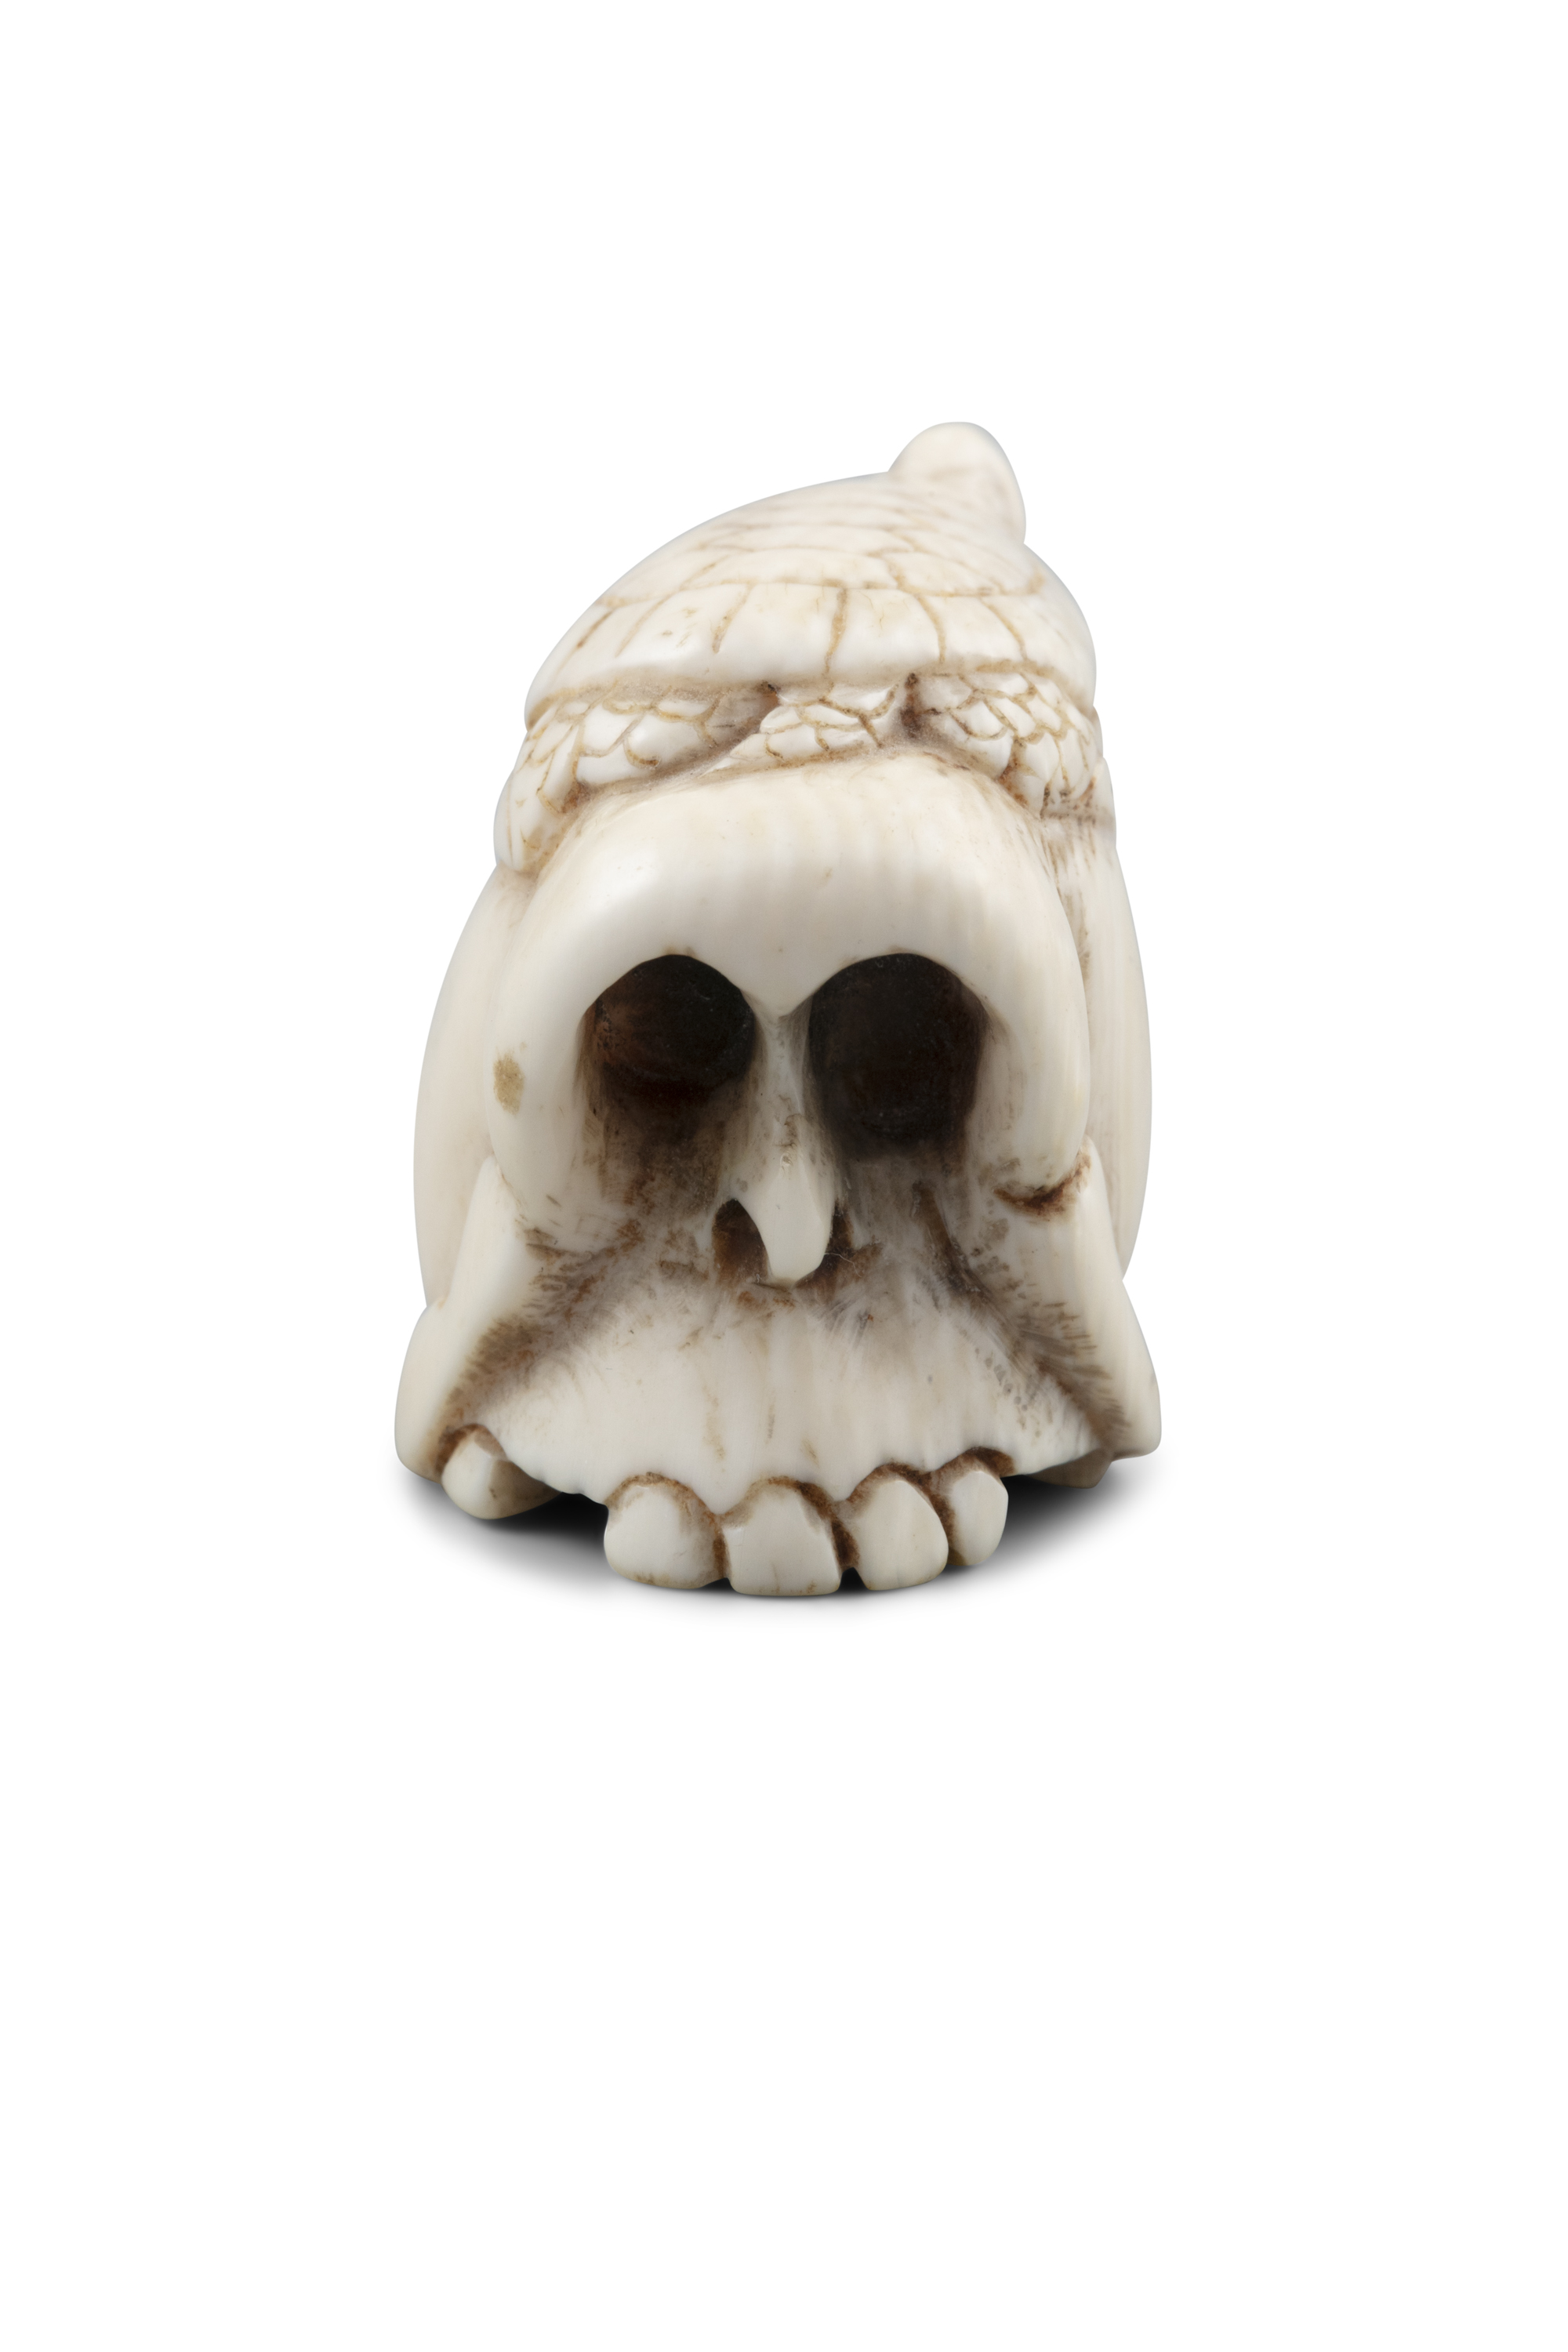 *VANITY - A GROUP OF TWO (2) 'SKULL' KATABORI NETSUKE Japan, 19th century The first one carved out - Image 8 of 18